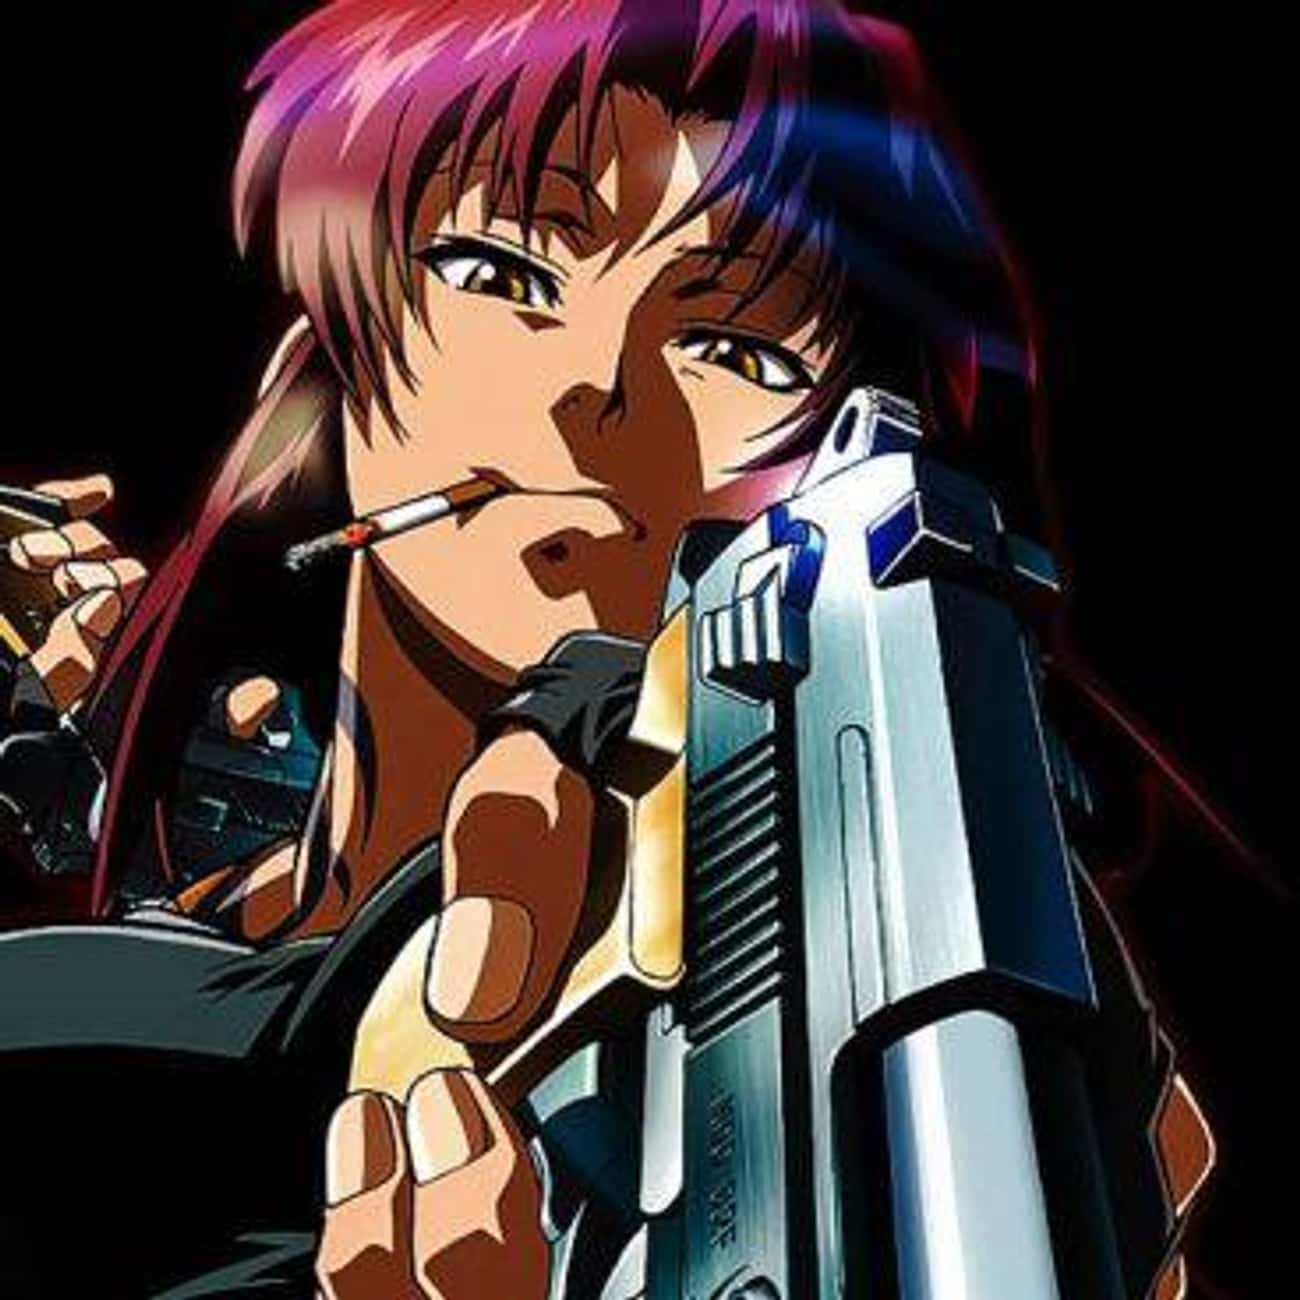 Black Lagoon is listed (or ranked) 3 on the list 15 Anime With Strong Female Characters